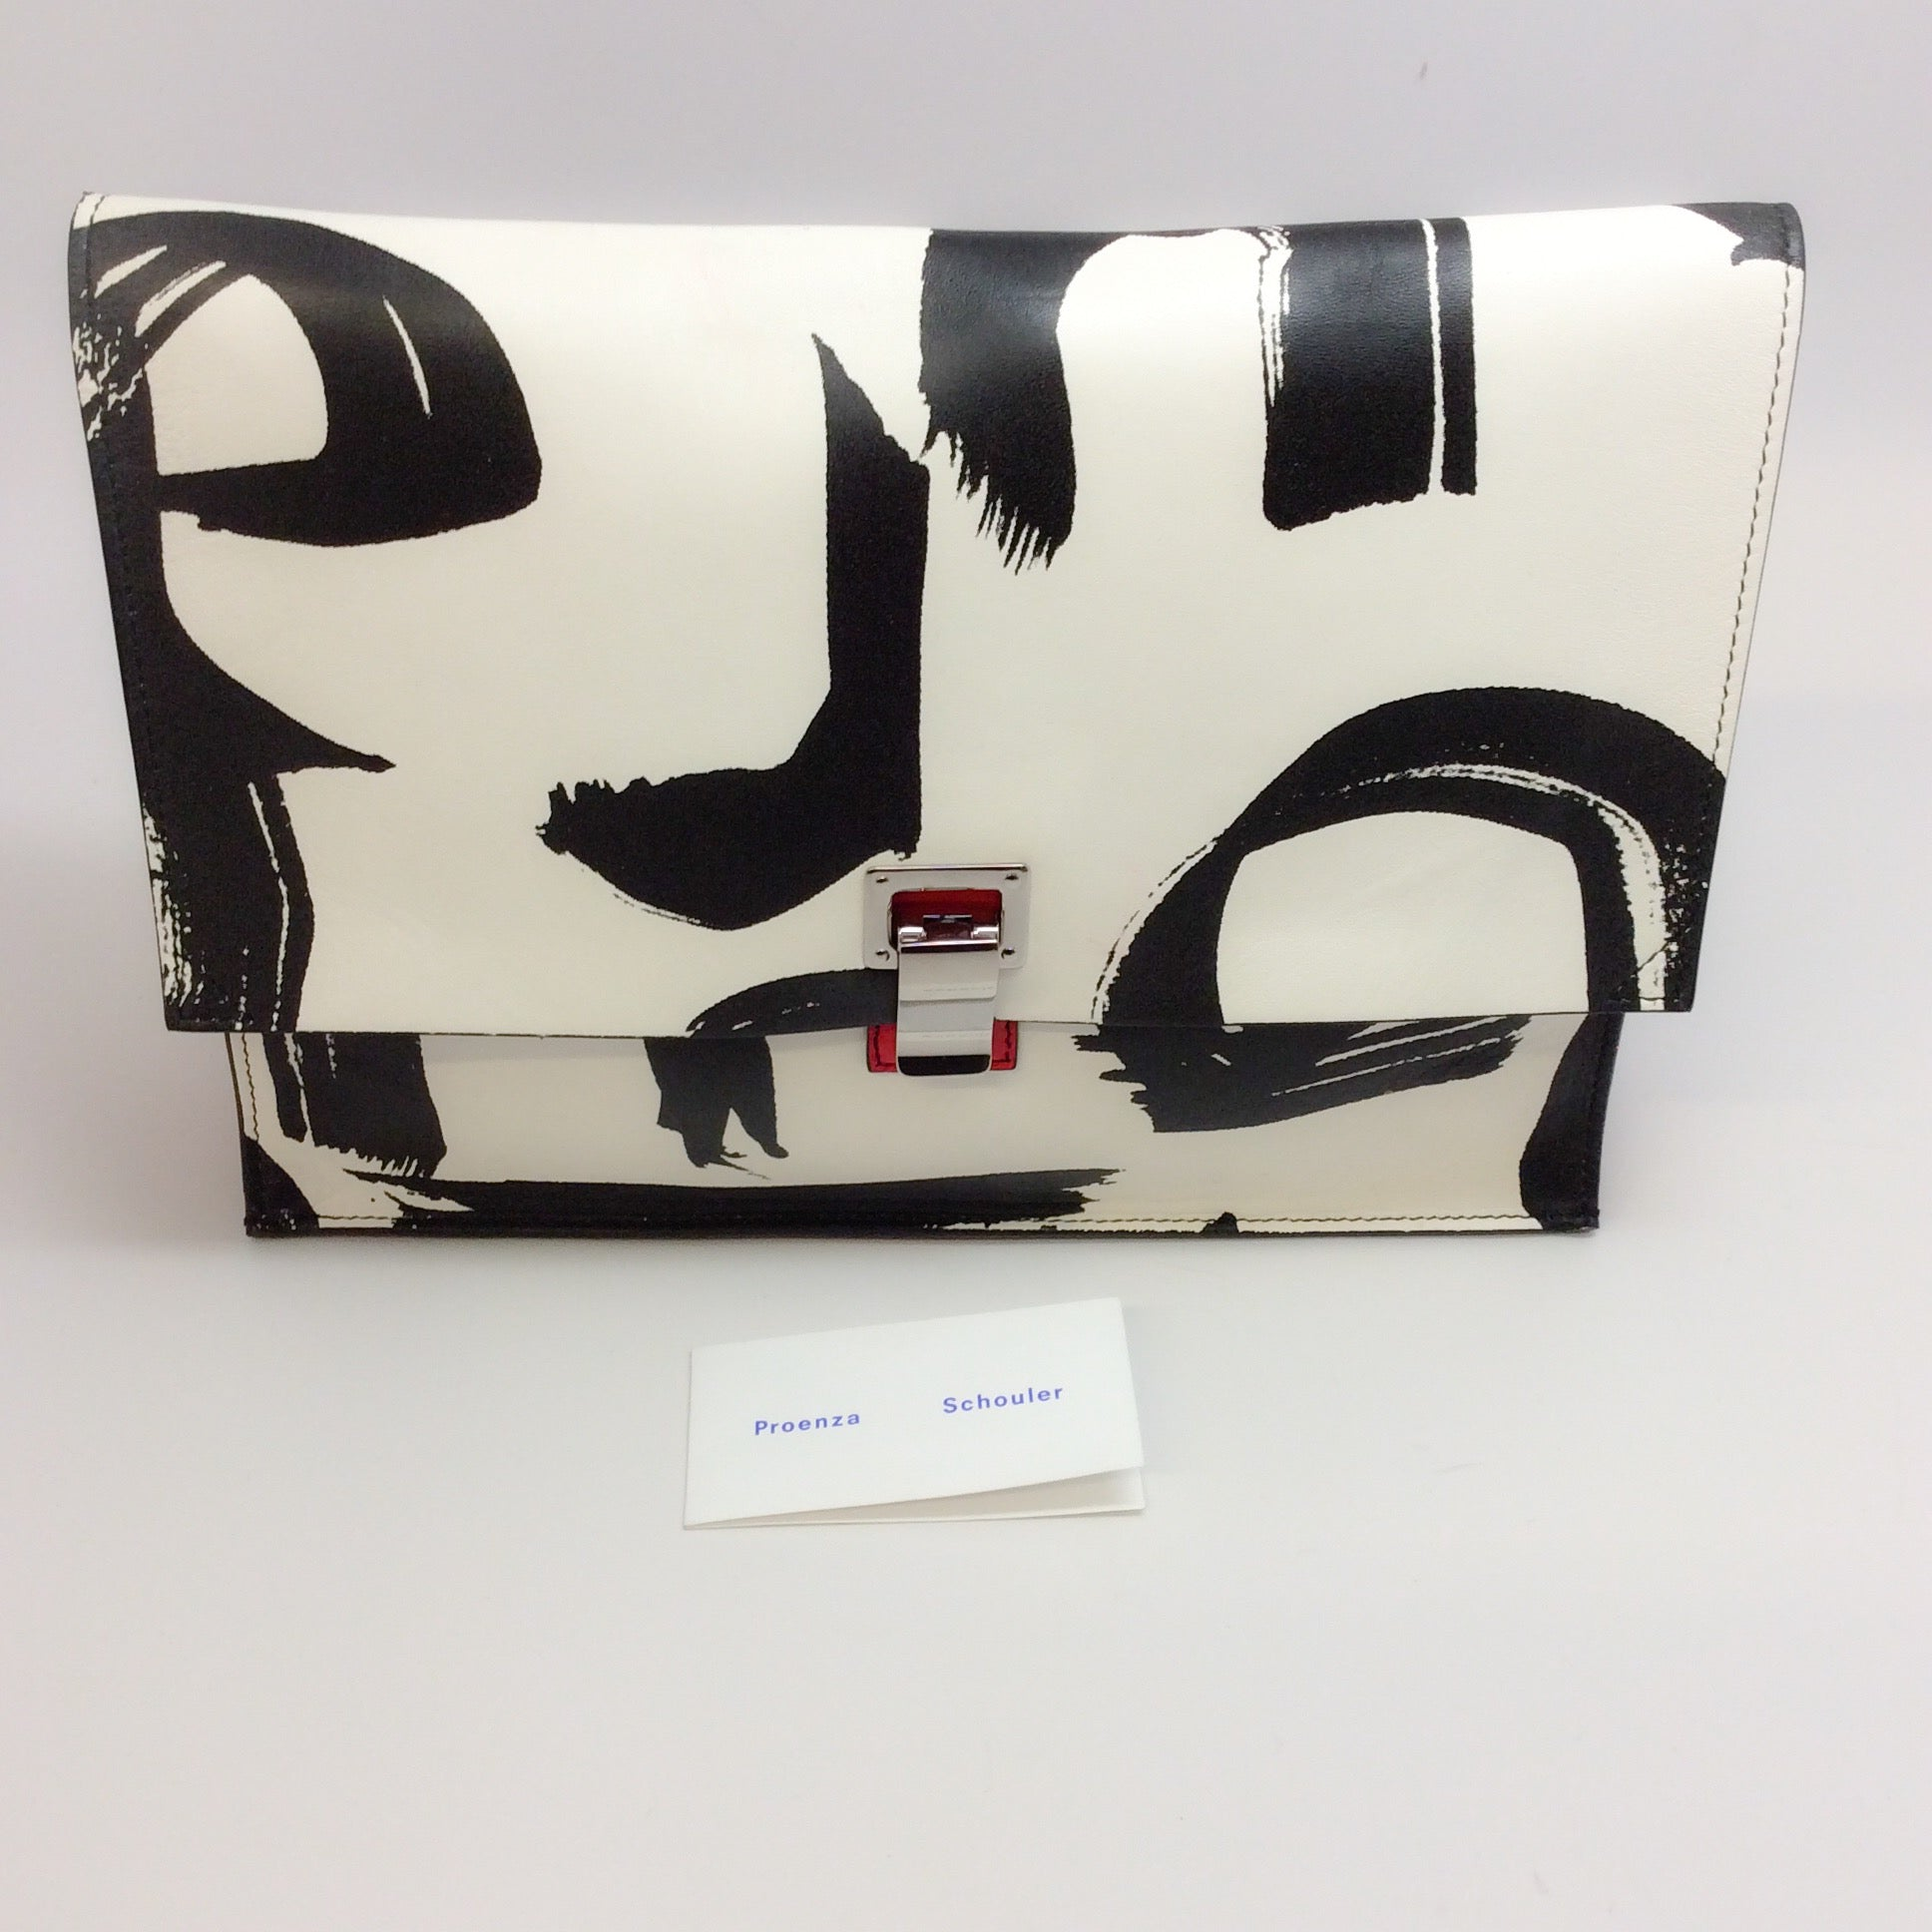 Proenza Schouler Large Lunch Printed Leather Clutch